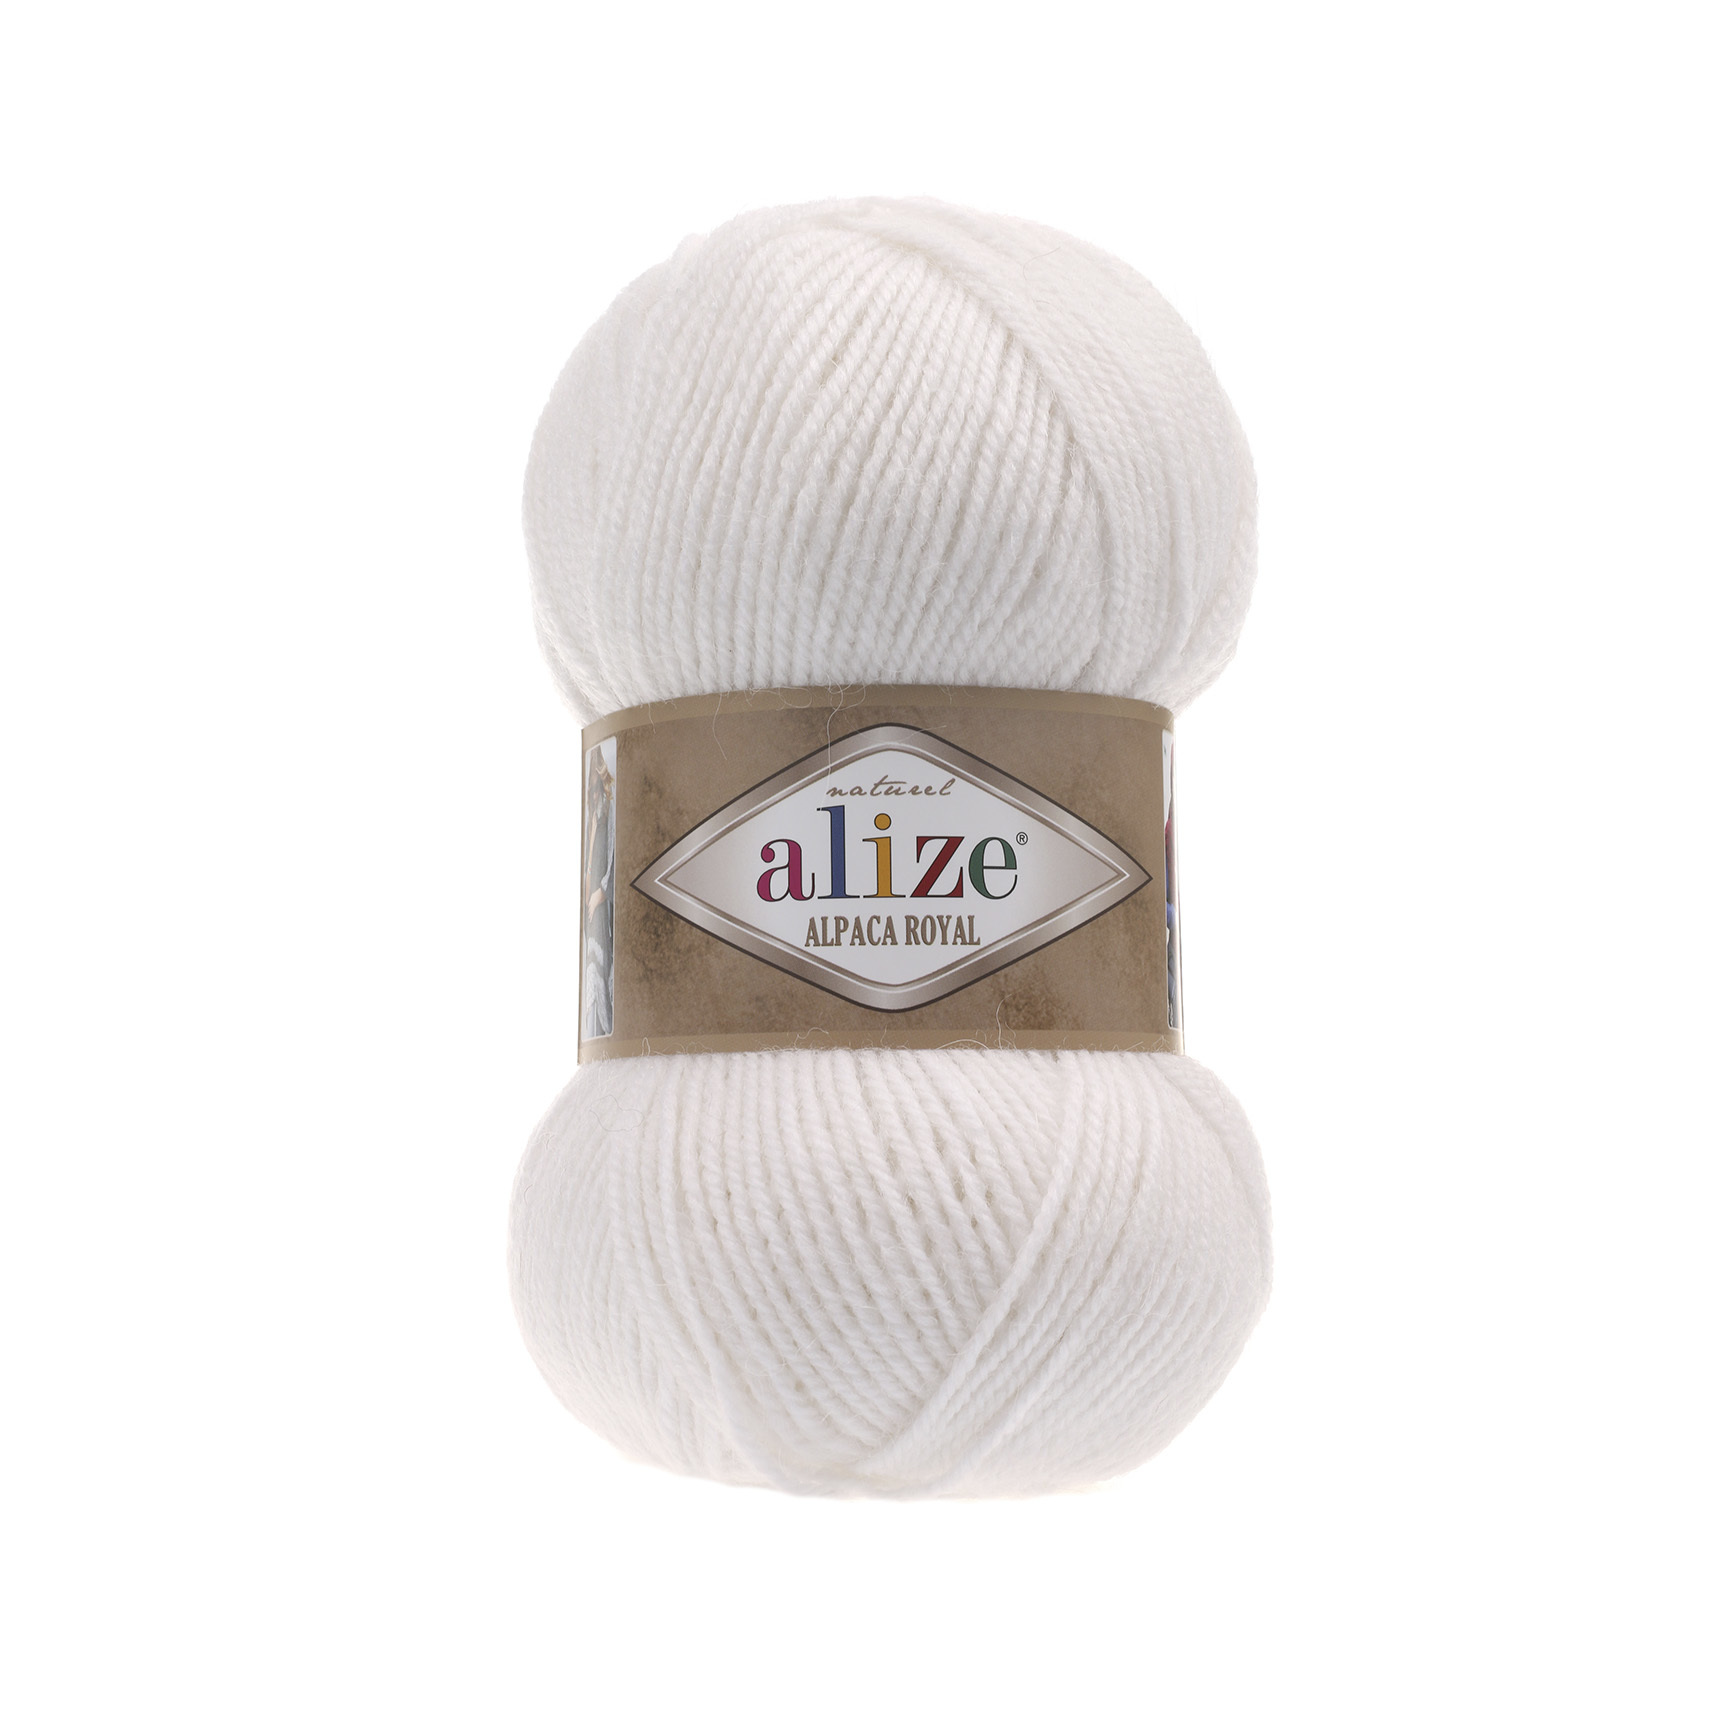 Пряжа Alize Alpaca Royal белый 55